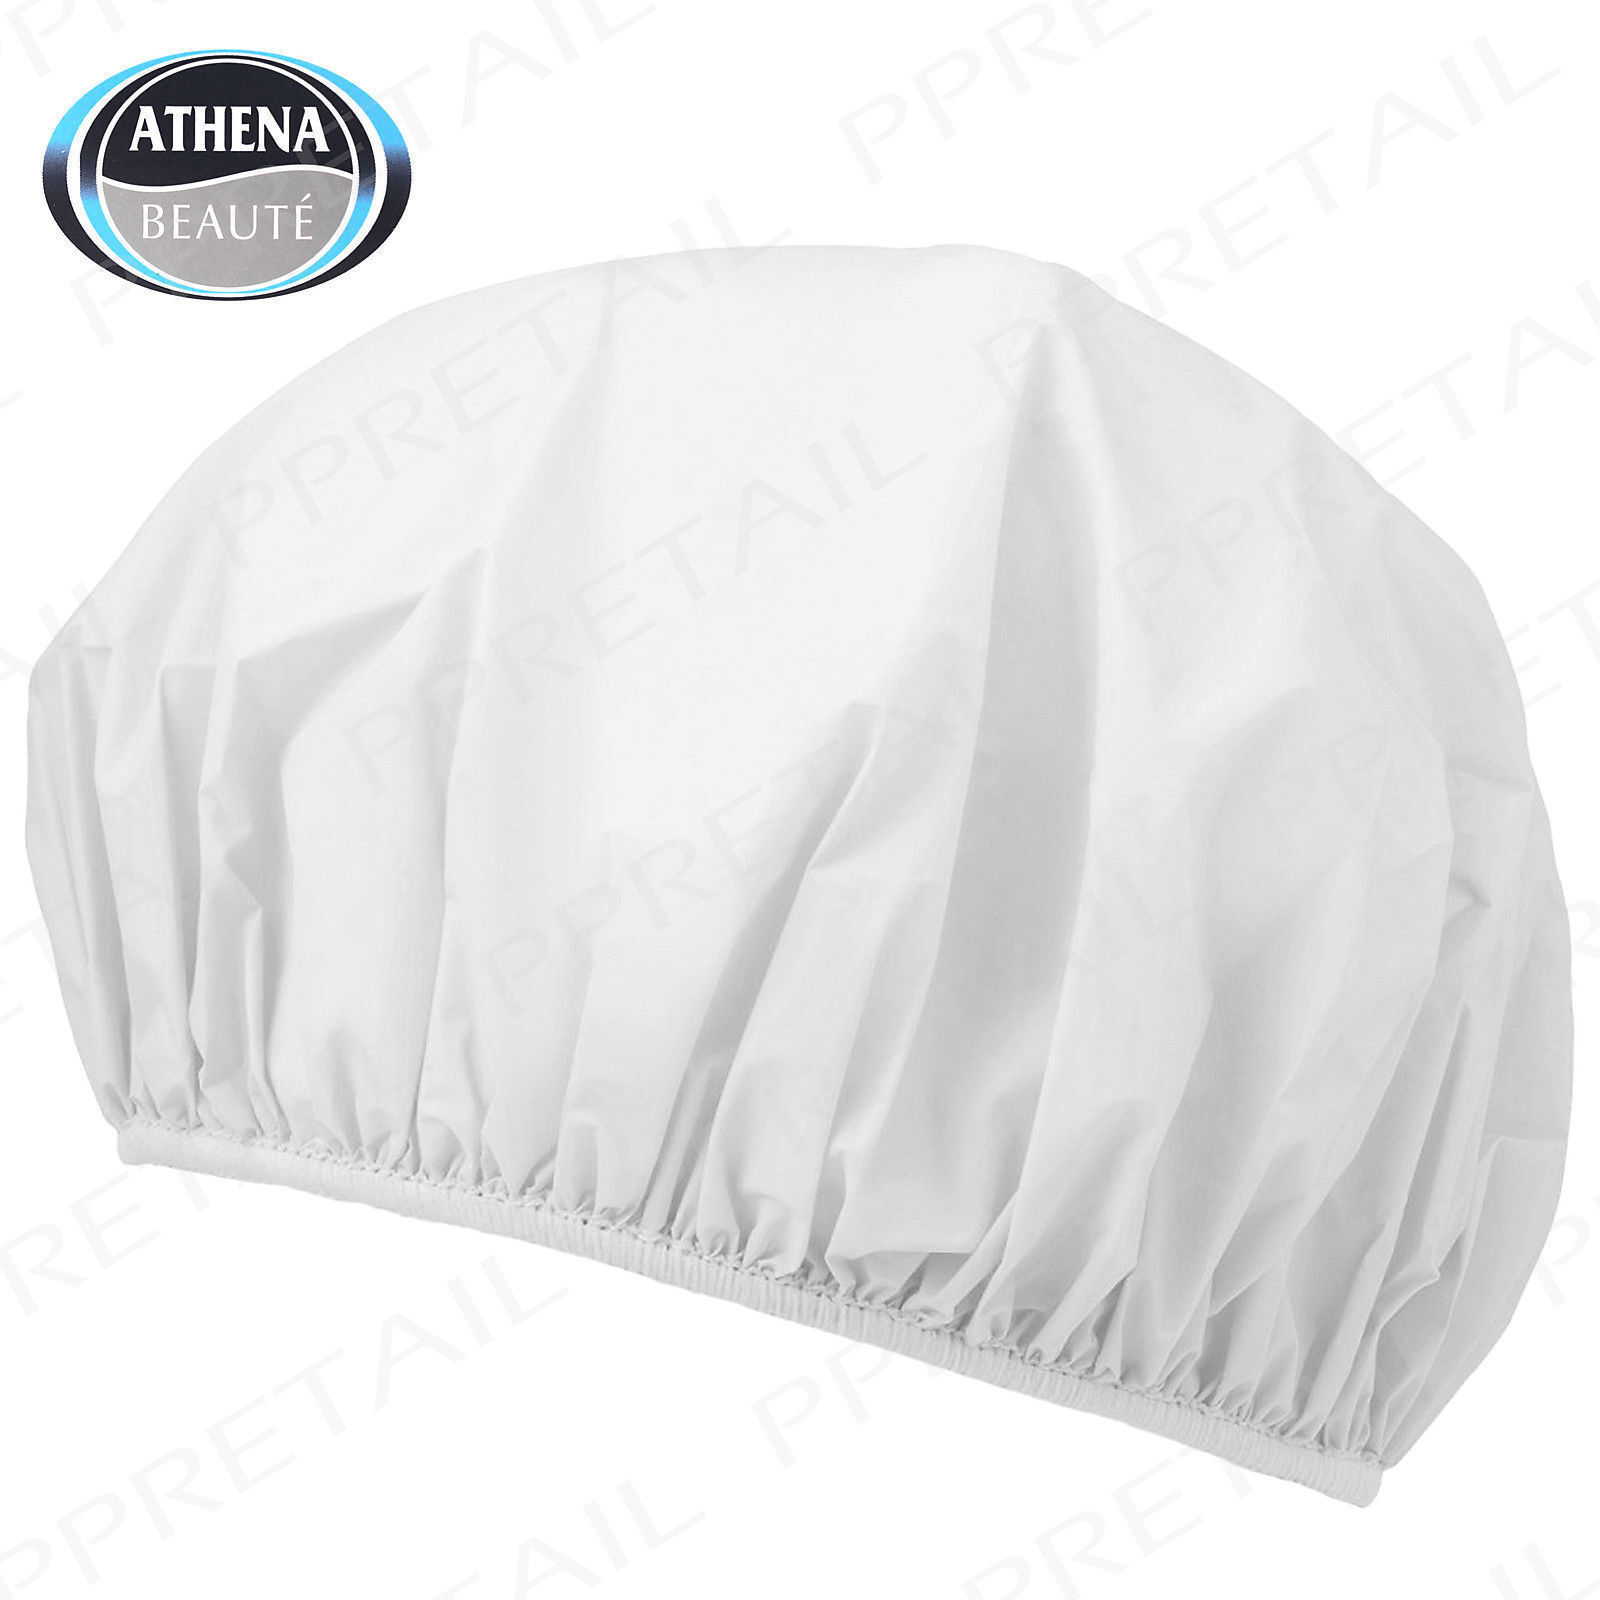 Shower Caps Elasticated Waterproof Hair Wrap Bath (Pack of 4) by Athena